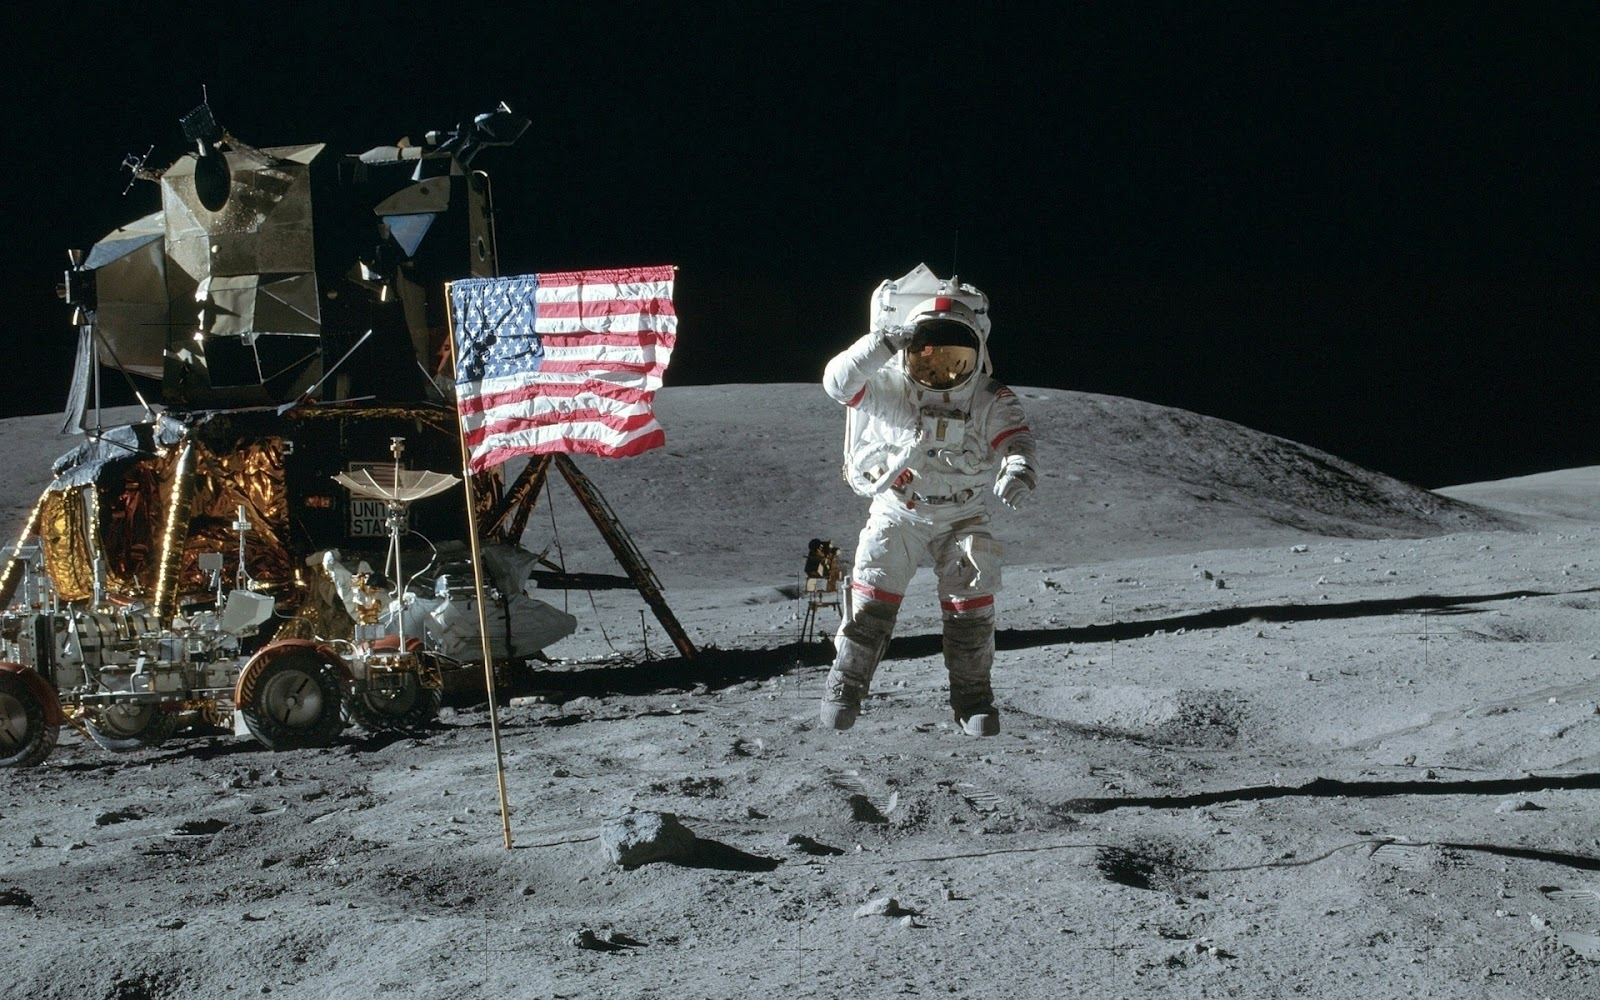 What Effect Did the First Moon Landing Have on the World?